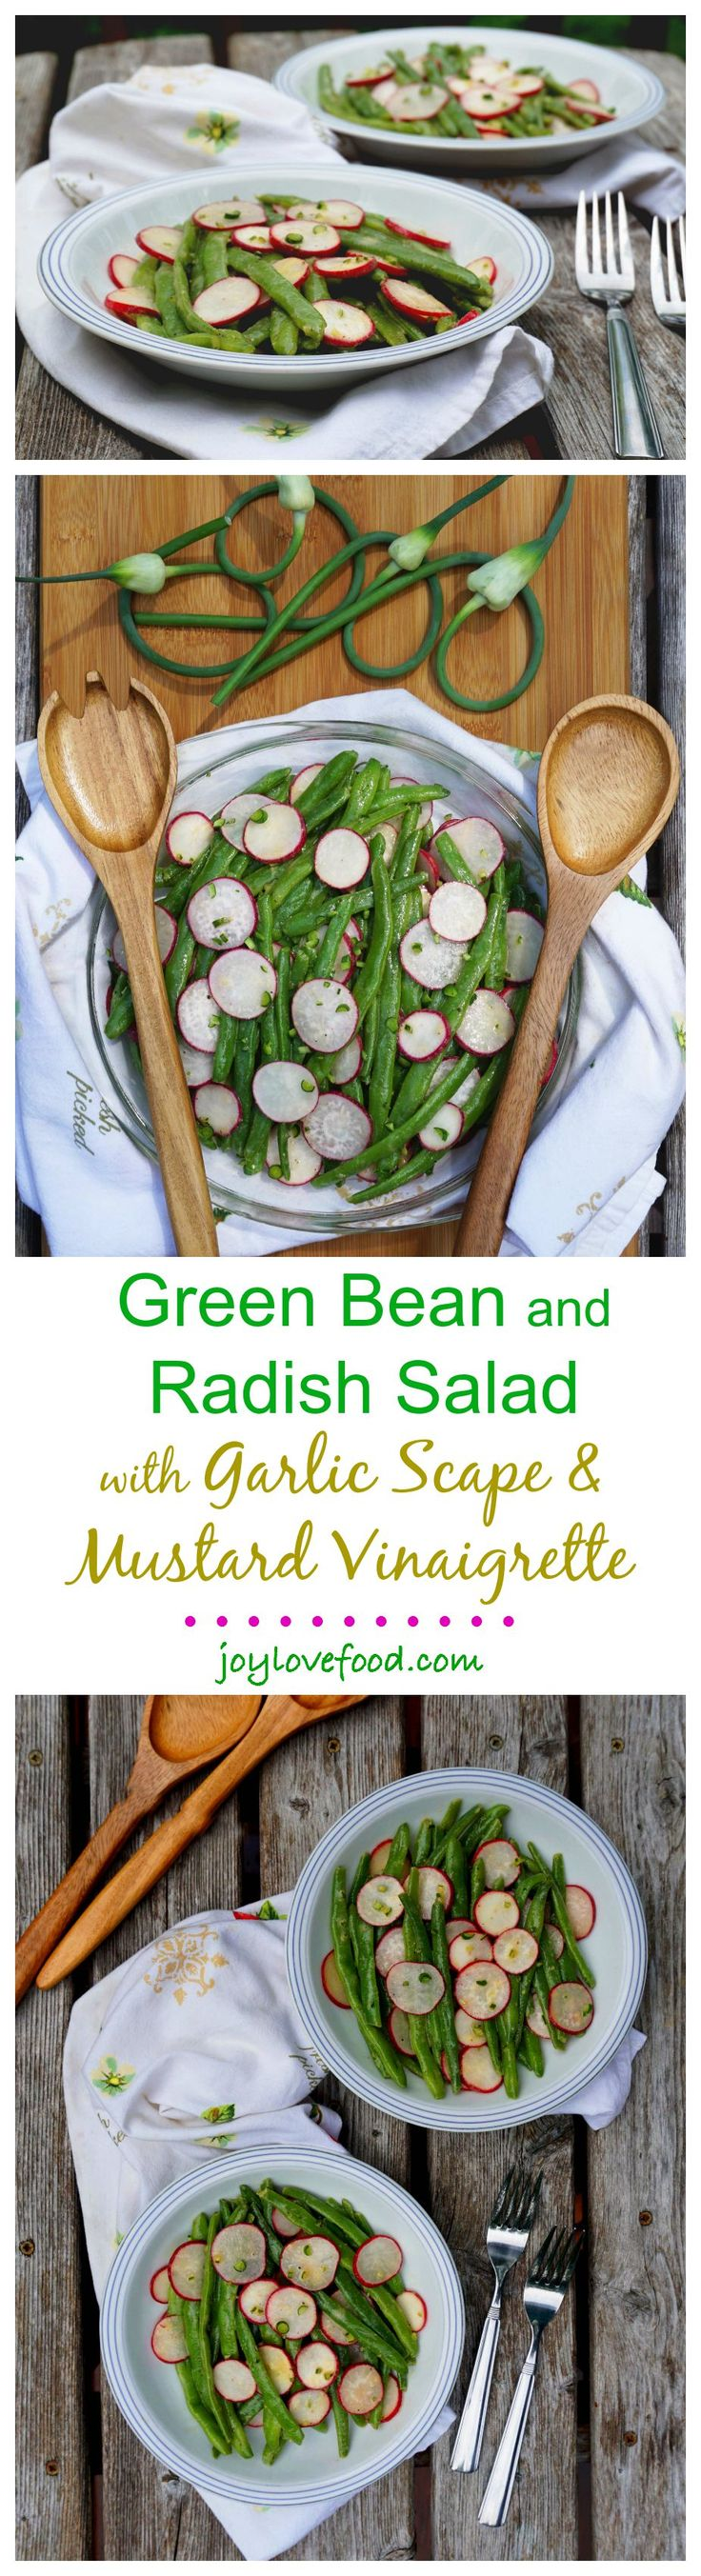 Green Bean and Radish Salad with Garlic Scape & Mustard Vinaigrette - fresh, vibrant and full of flavor, this is a delicious side dish for a summer barbeque, it is also great for a healthy lunch or snack.